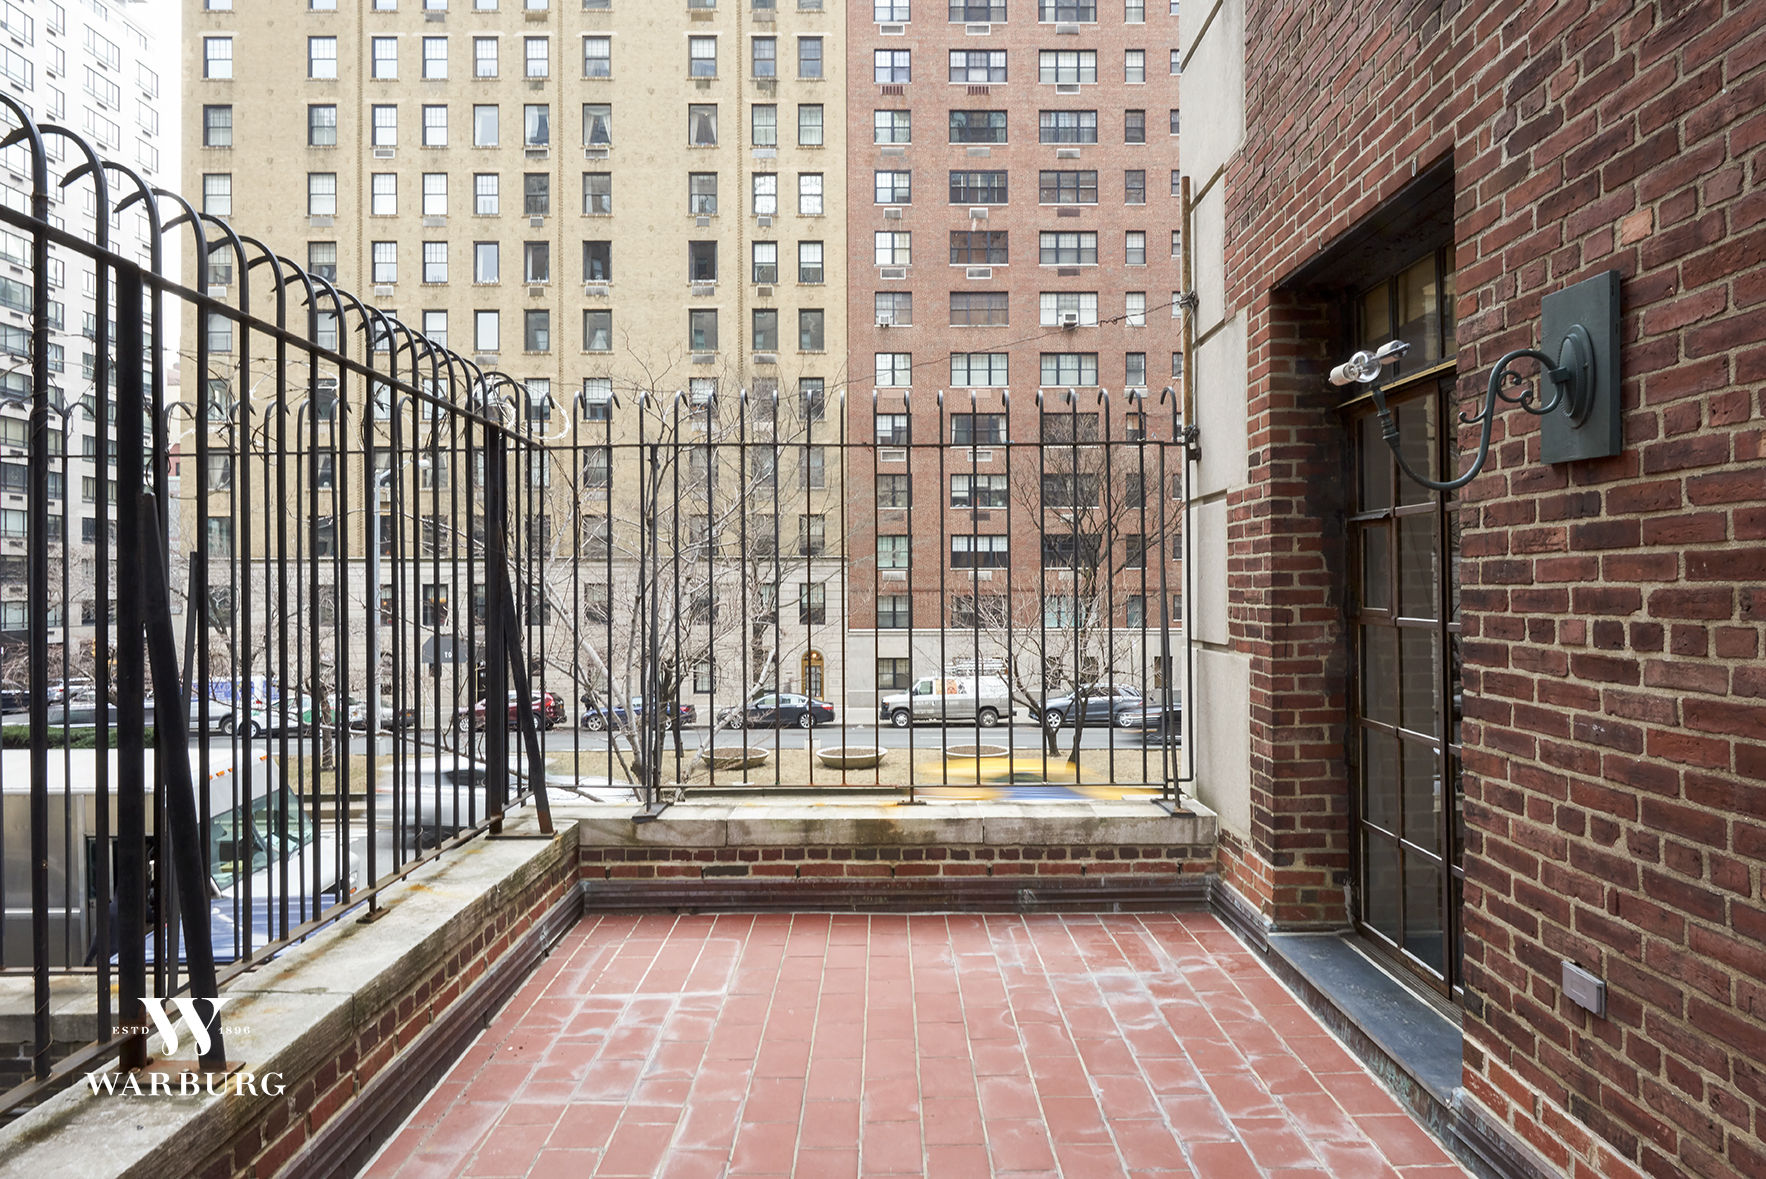 778 Park Ave., Apt 2FL Photo 6 - WR-317454